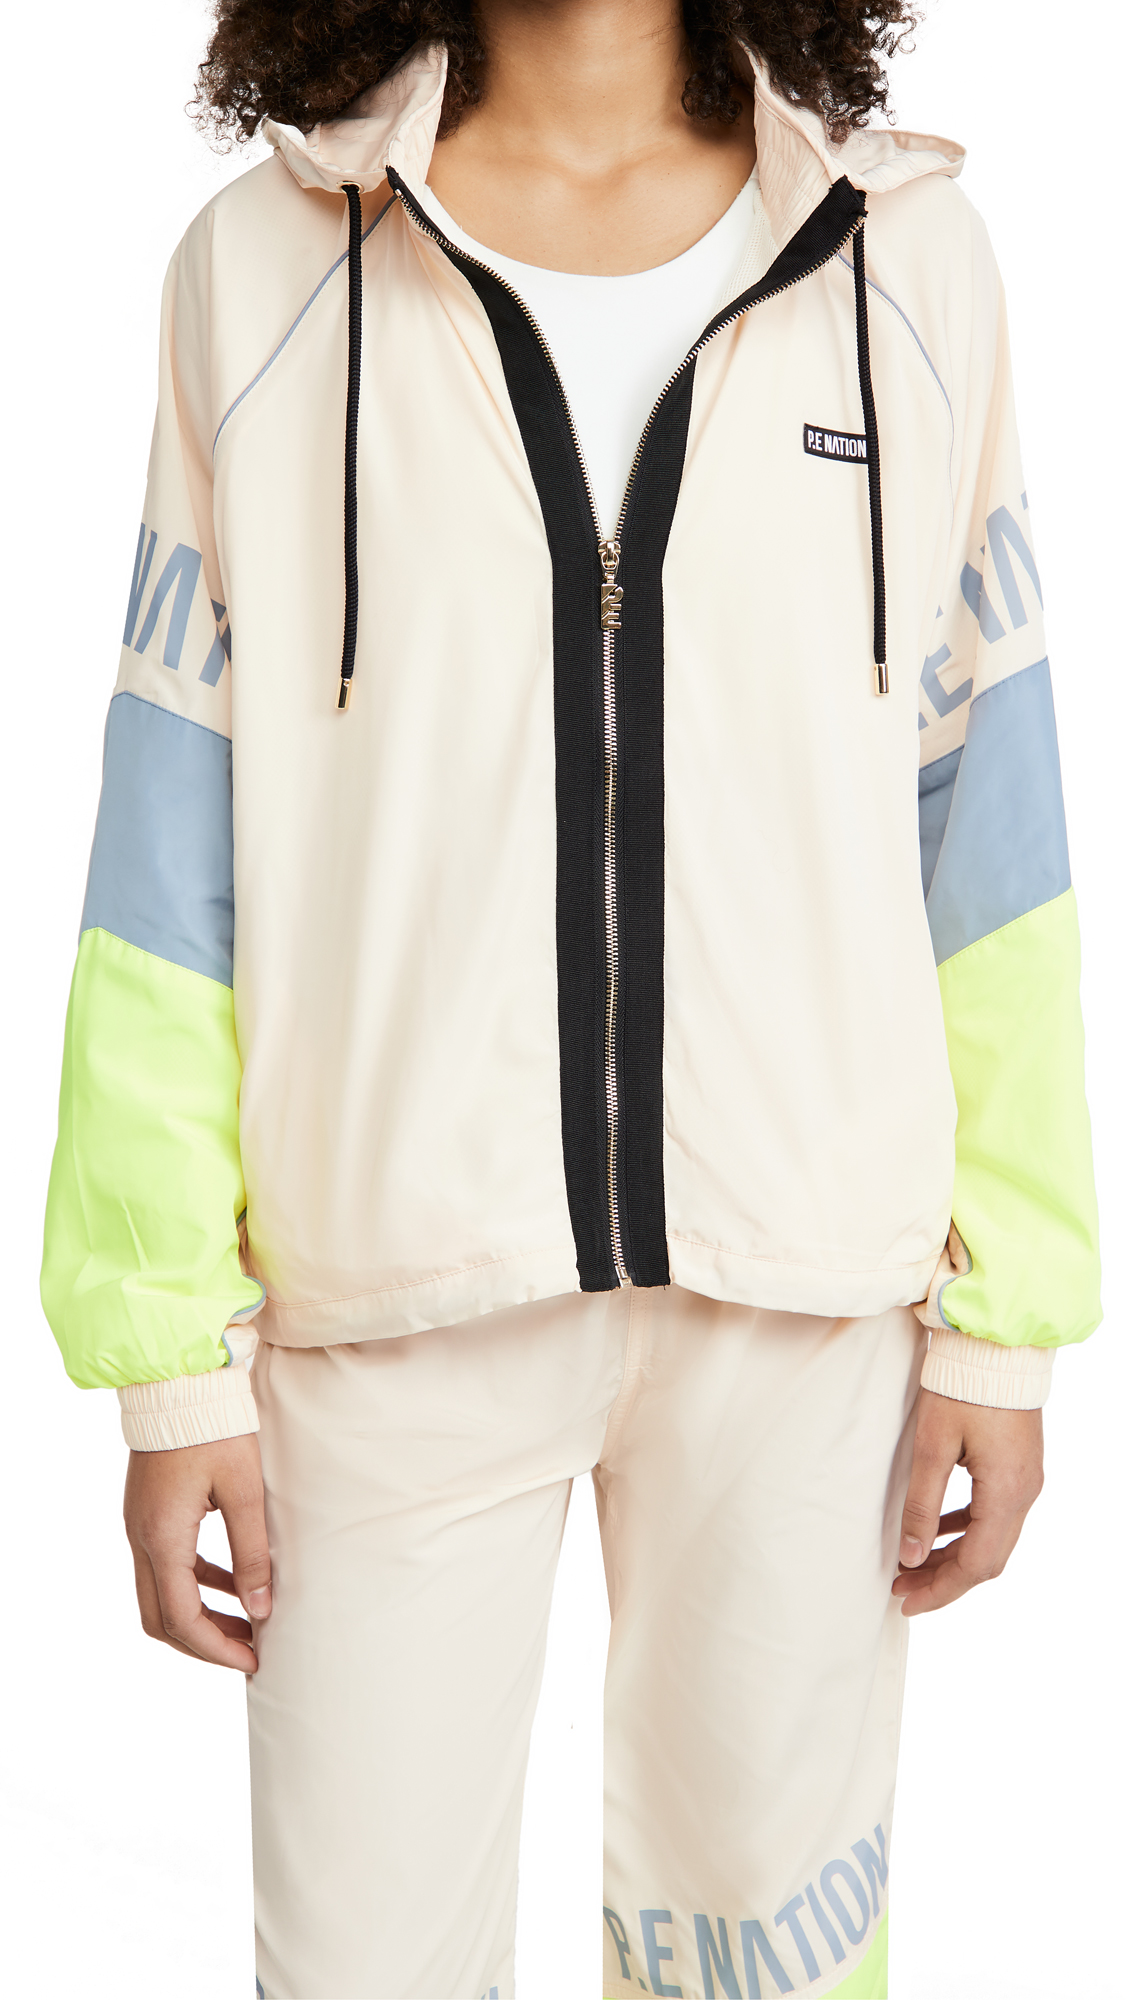 P.e Nation Jackets FIRST POSITION JACKET